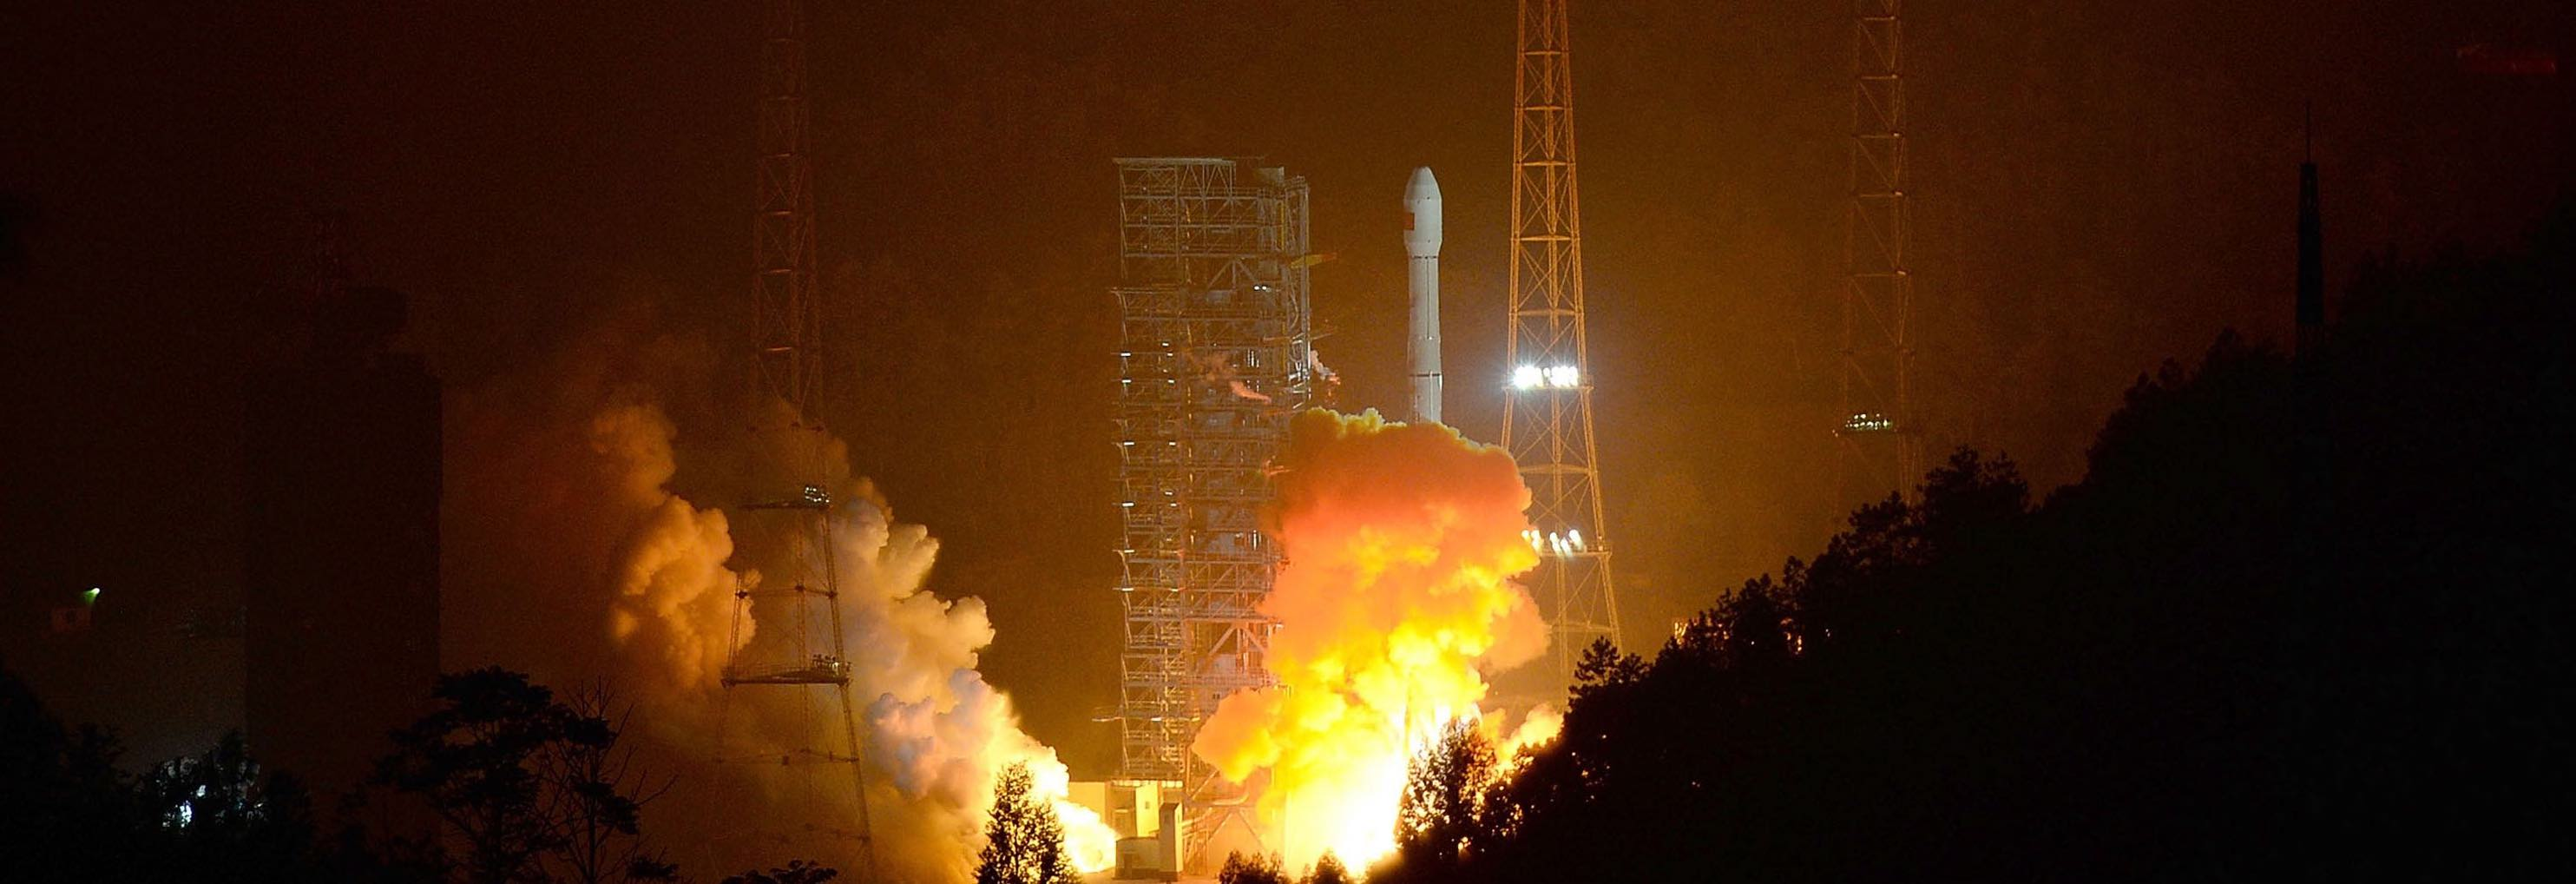 A Long March-3B carrier rocket carrying China's Chang'e-3 lunar probe takes off from the Xichang Satellite Launch Centre (Photo: VCG, via Getty)